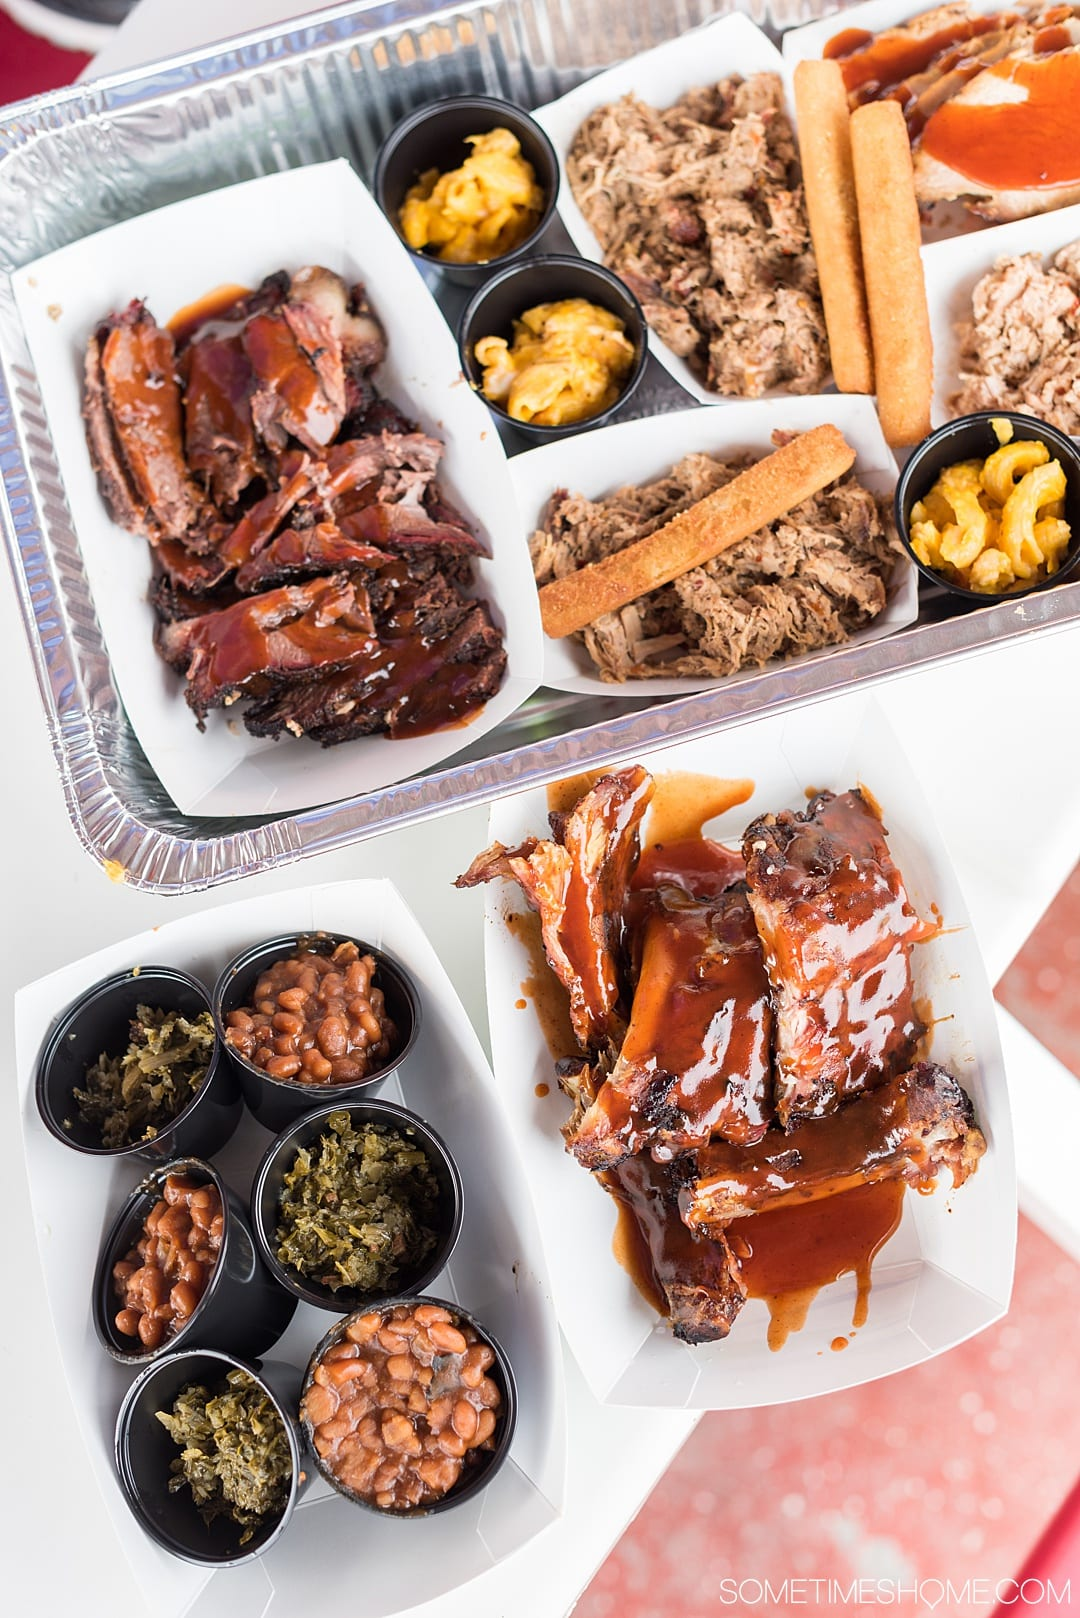 Goldsboro NC BBQ is a force to be reckoned with! The eastern vinegar based sauce of barbecue in this United States region can be sampled at a variety of restaurants, on pork, chicken, turkey or more. These restaurants have rubs to delight your taste too. Check out our article about the best places to try these southern delicacy recipes on delicious meats. #NCBBQ #barbecue #BBQ #northcarolina #GoldsboroNC #sometimeshome #vinegarBBQ #AdamsRoadside